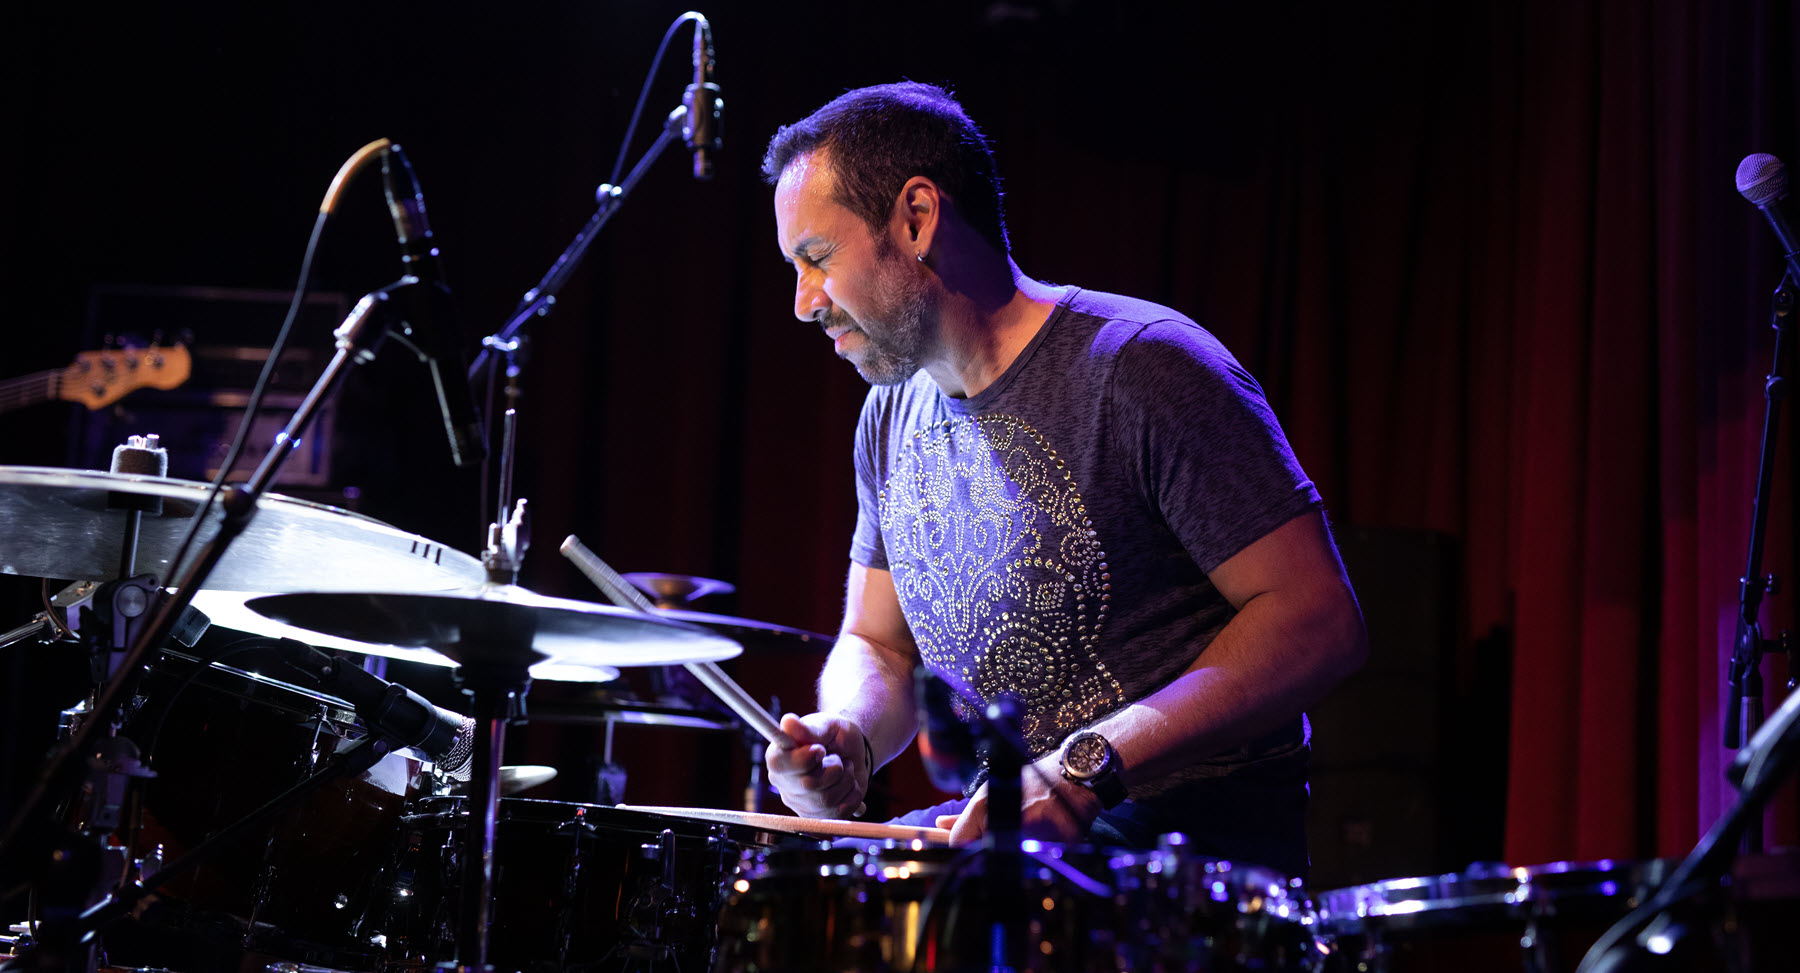 Man playing drums on stage.